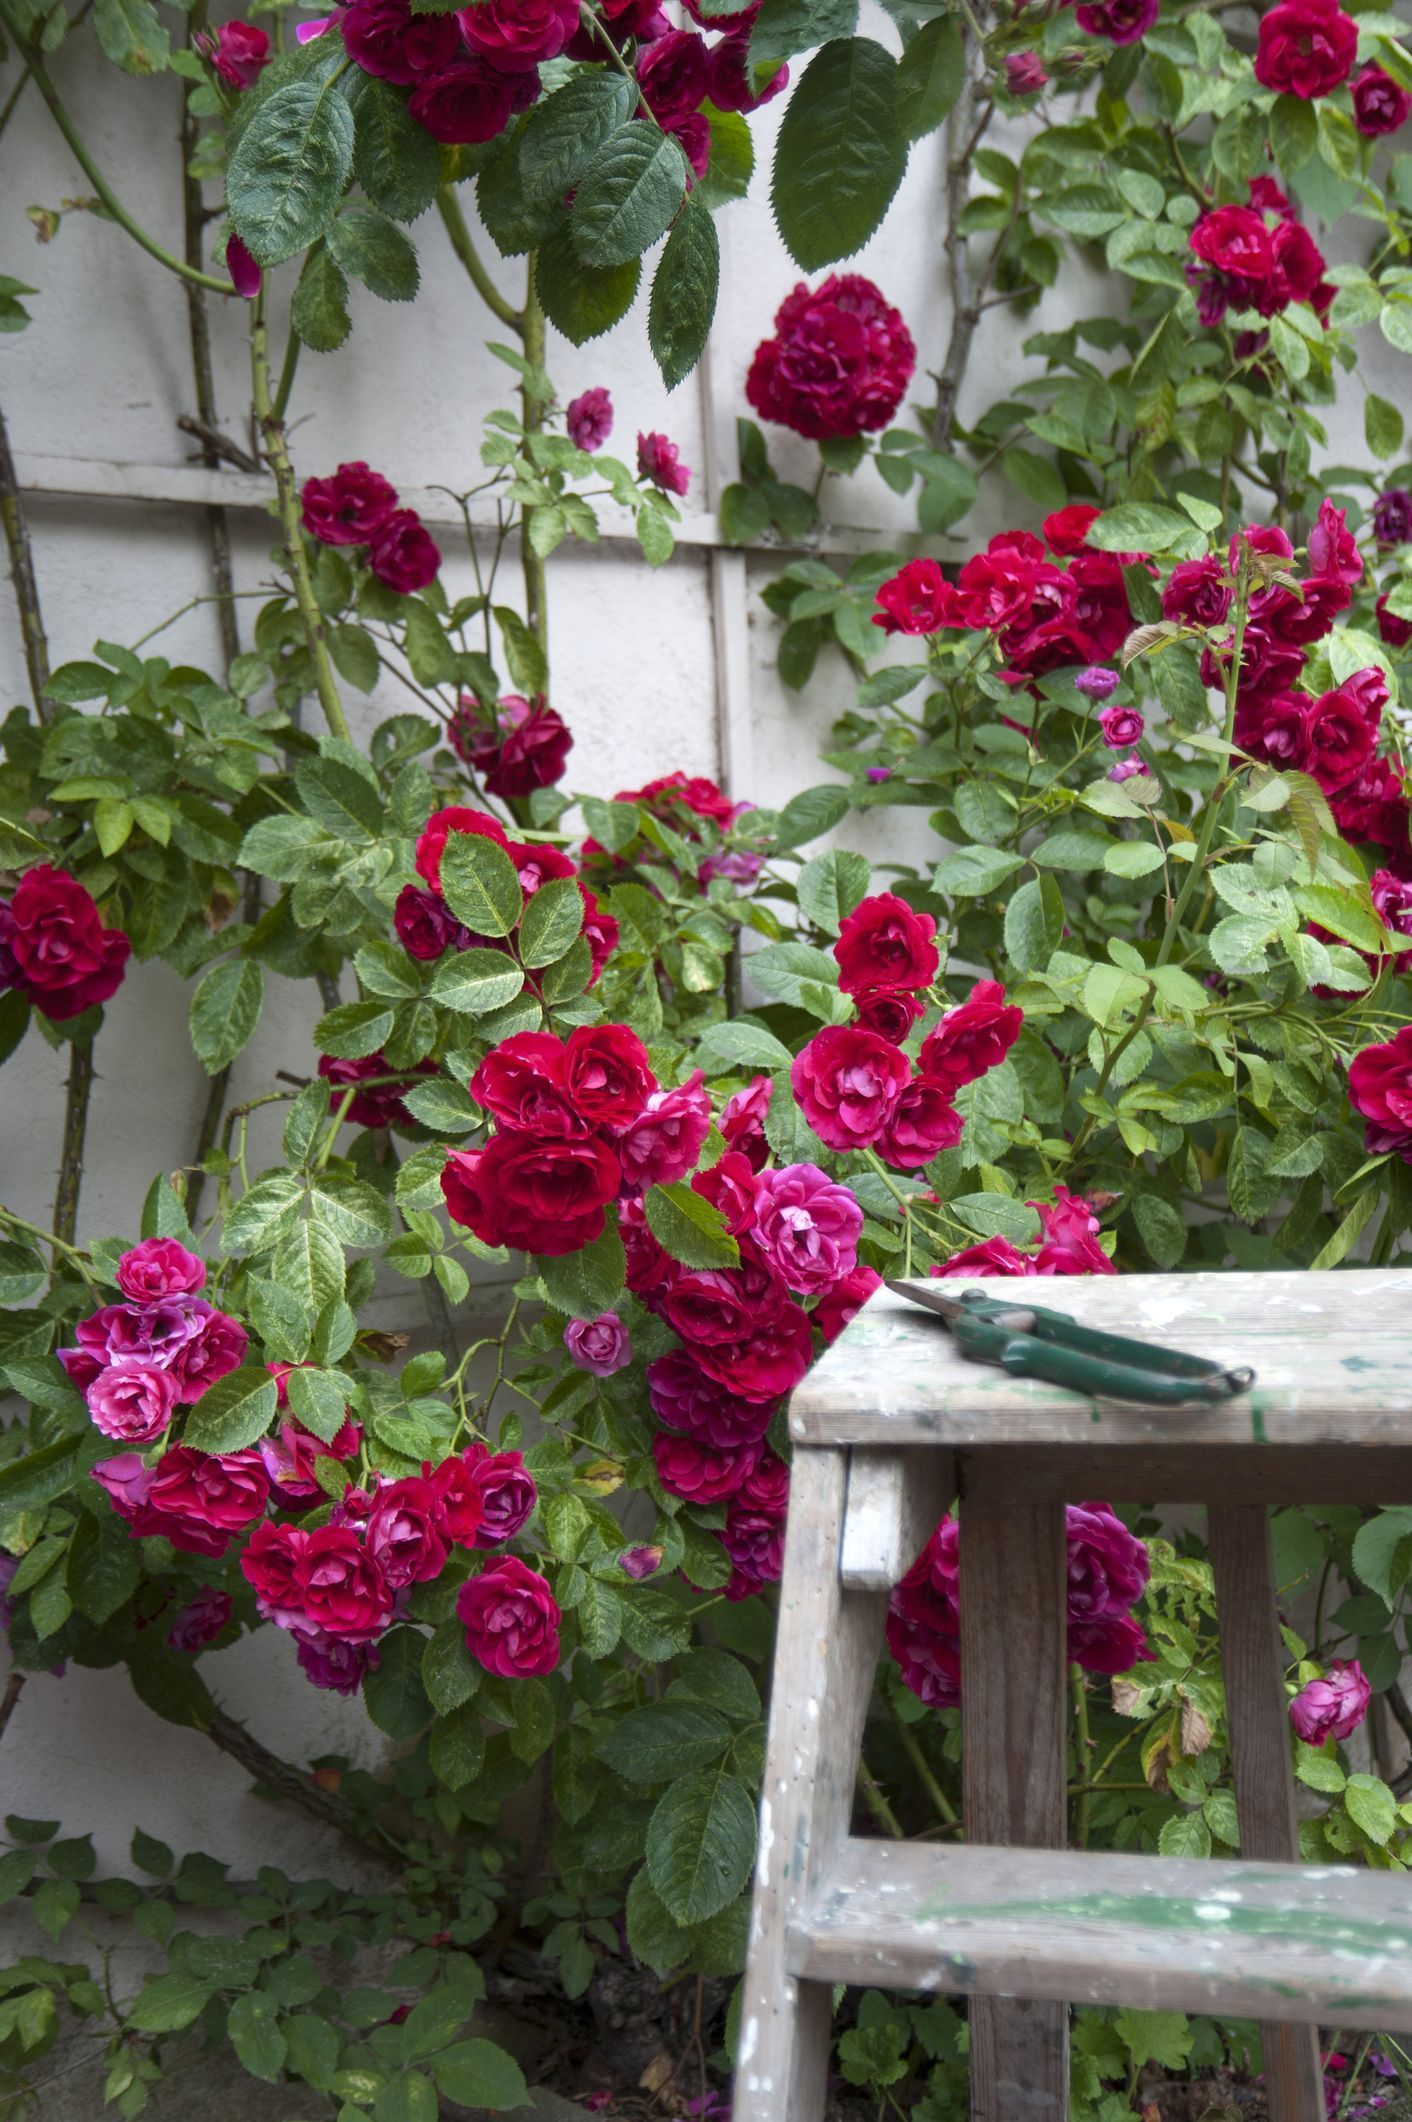 How To Properly Prune Roses Pruning Roses Rose Deadheading Roses